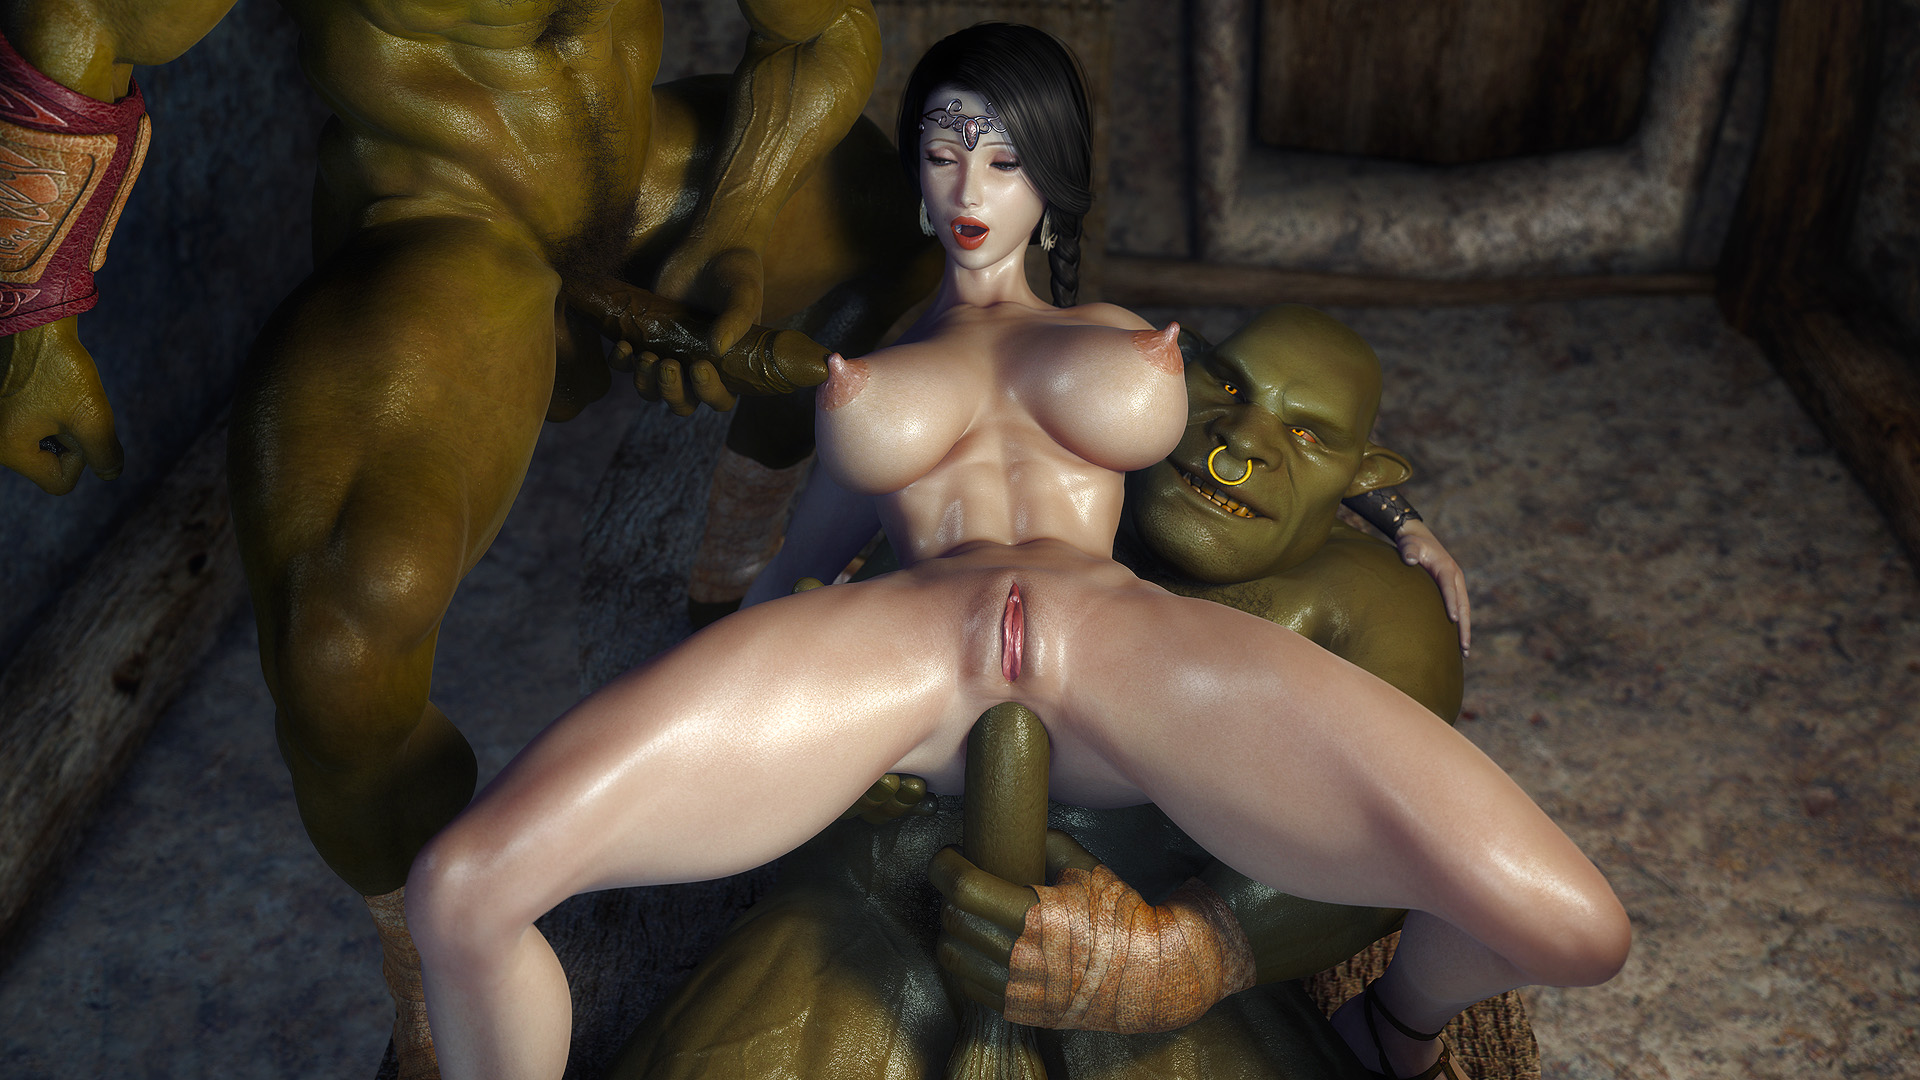 Naked sex wallpaper 3d free download hentia comic